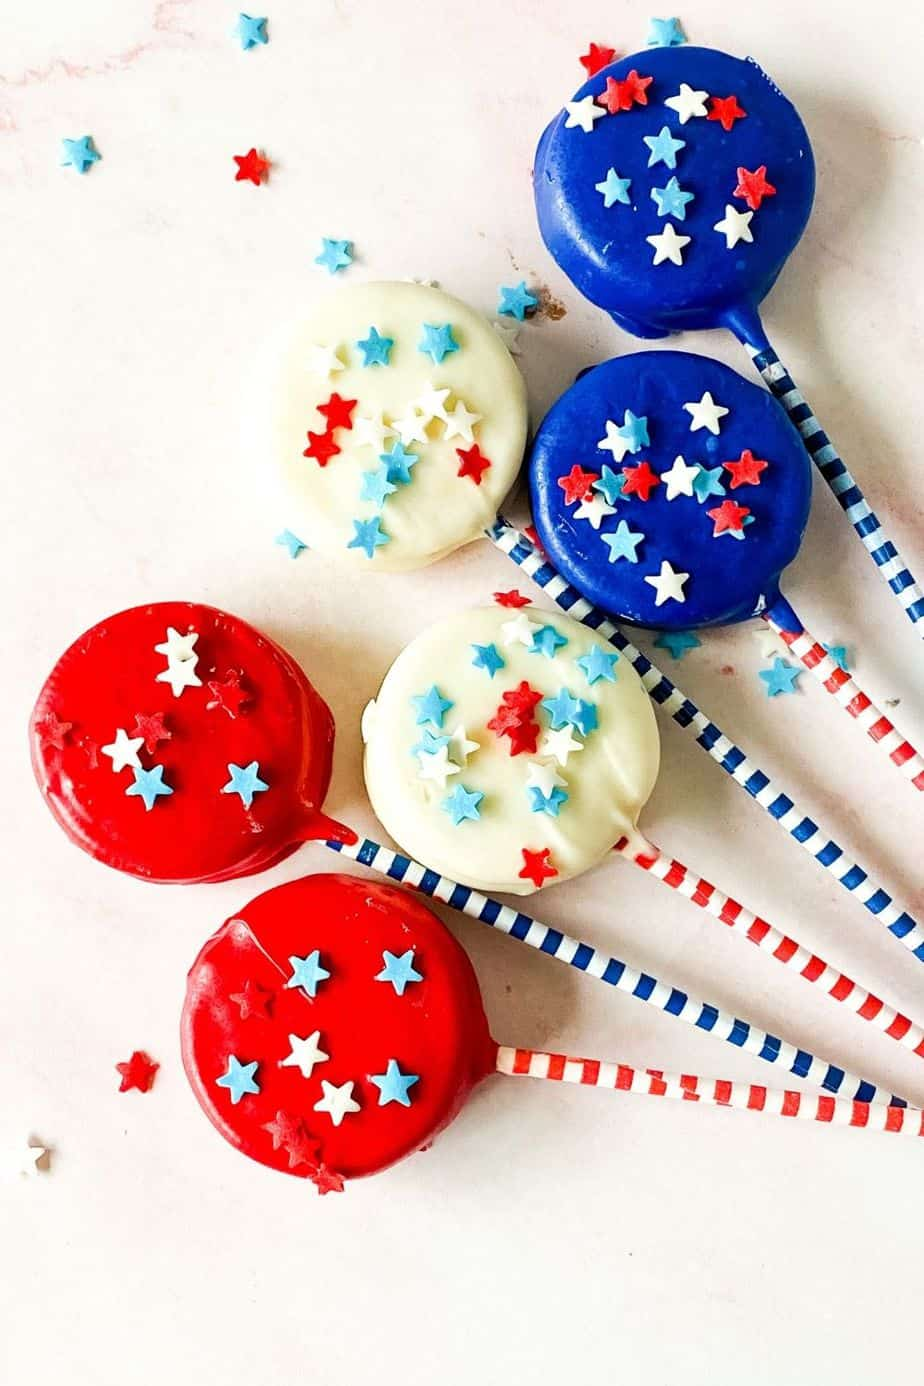 Patriotic Oreo Pops are a fun red, white and blue snack recipe to celebration the 4th of July or Memorial Day. Show you patriotic spirit and whip of a batch of these quick and easy cookie snacks.